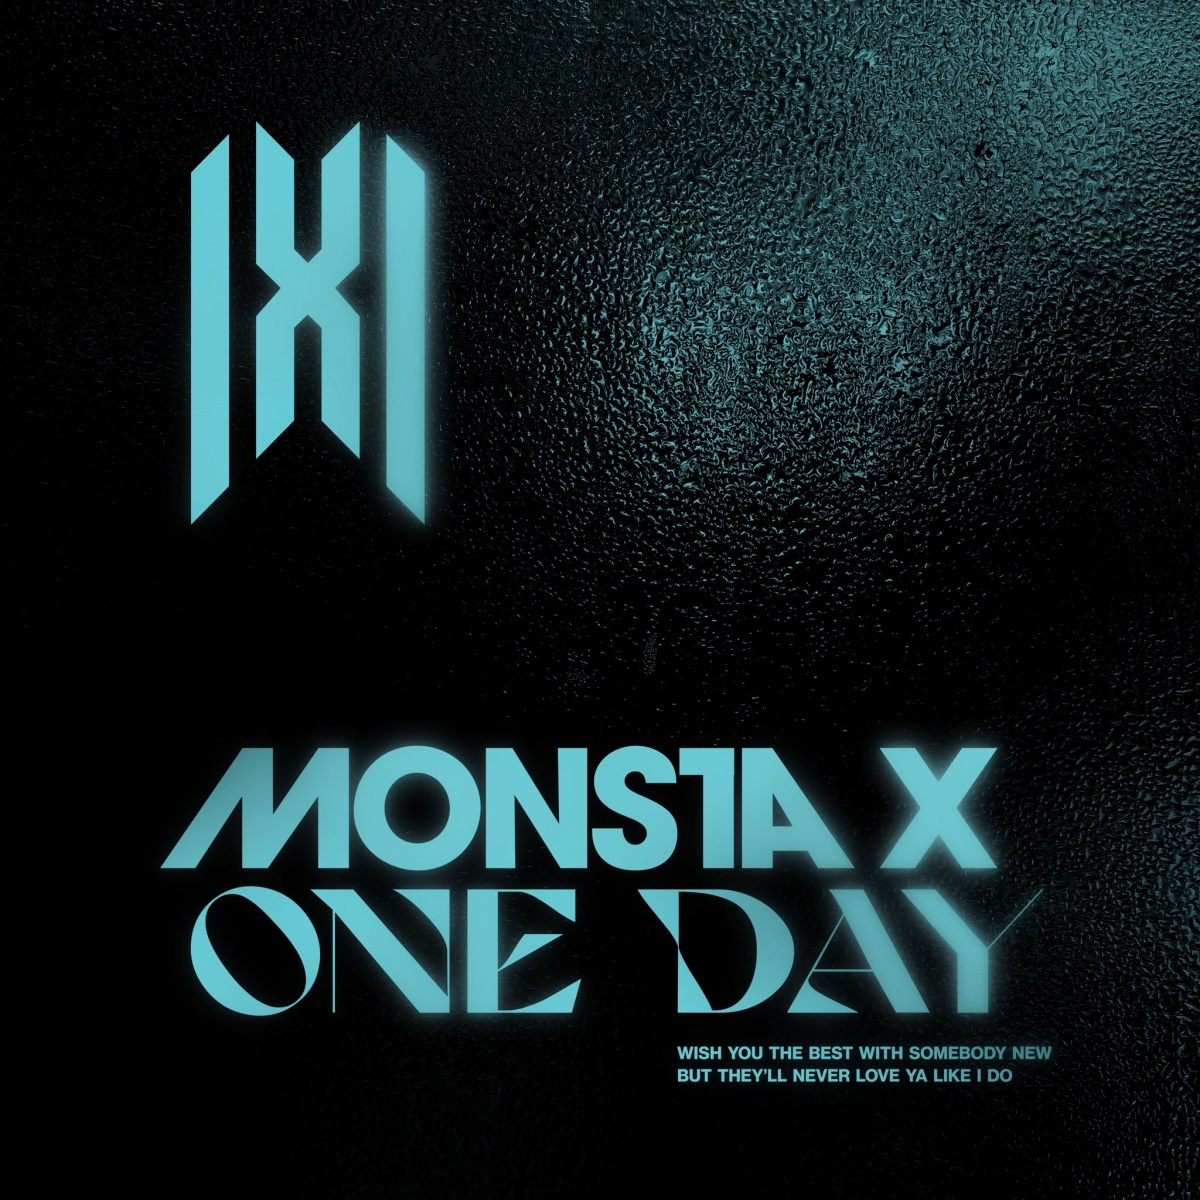 MONSTA X releases new US single 'One Day' on the 10th... Teaser surprise release